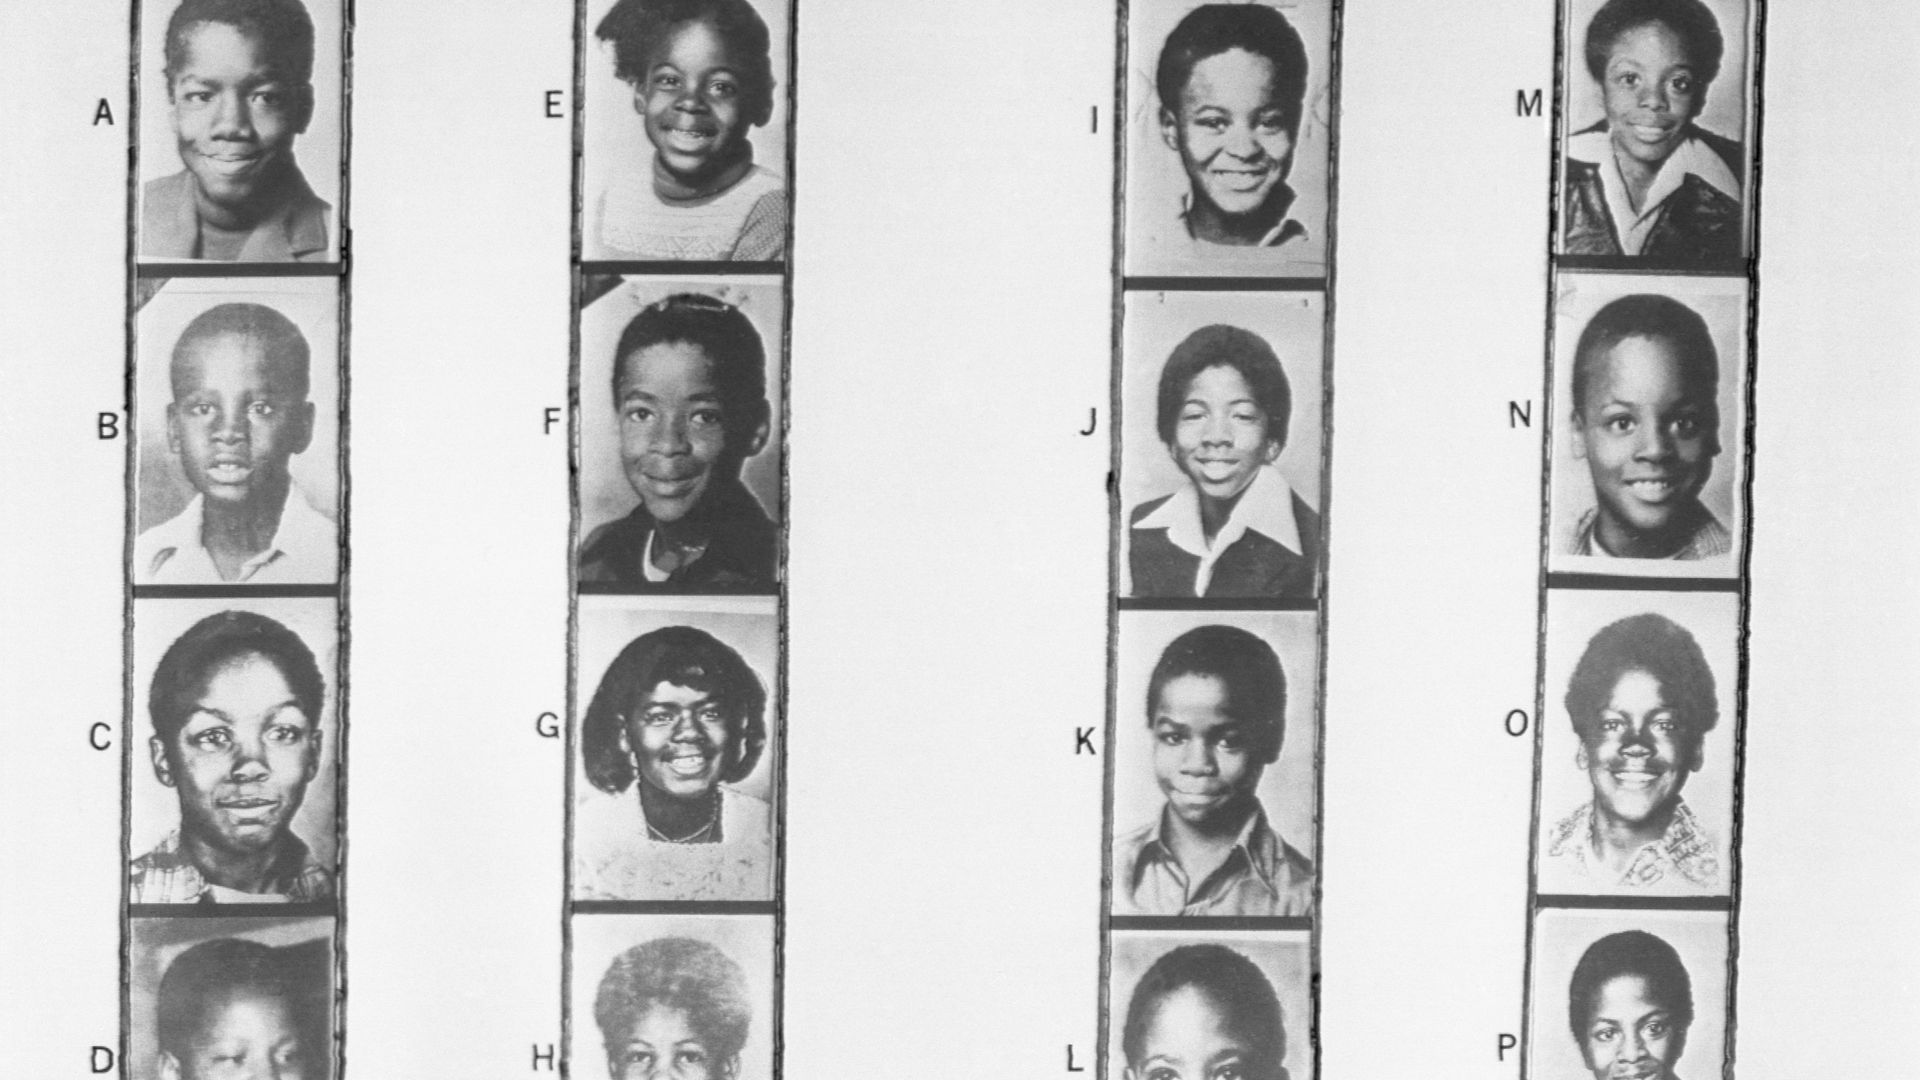 Rows of photographs of young Black children who were some of the victims in the Missing and Murdered Children cases in Atlanta